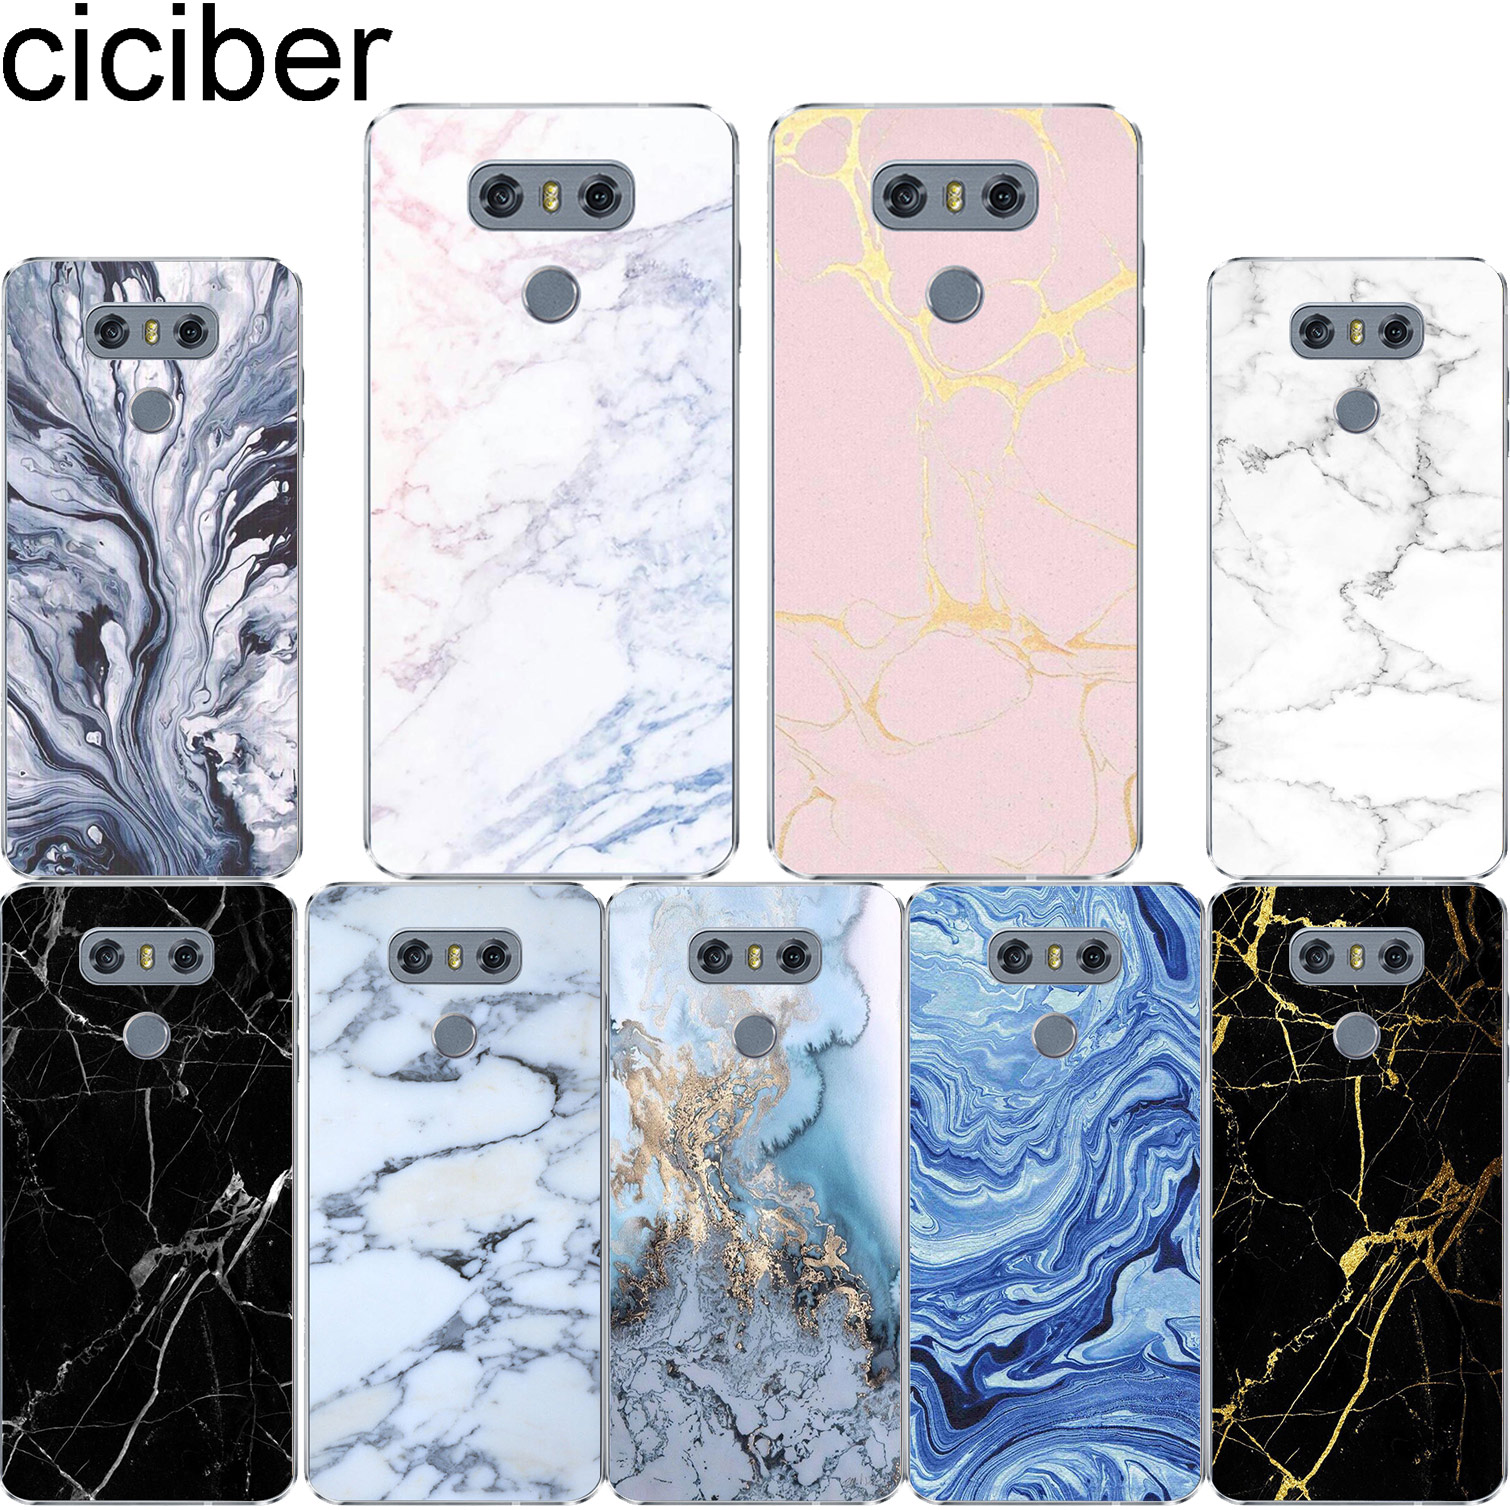 Colored Marble For LG K10 K8 K7 K4 2017 2018 K9 K11 + Soft TPU Phone Case For LG V40 V35 V30 V20 THINQ G7 G6 G5 G4 Coque